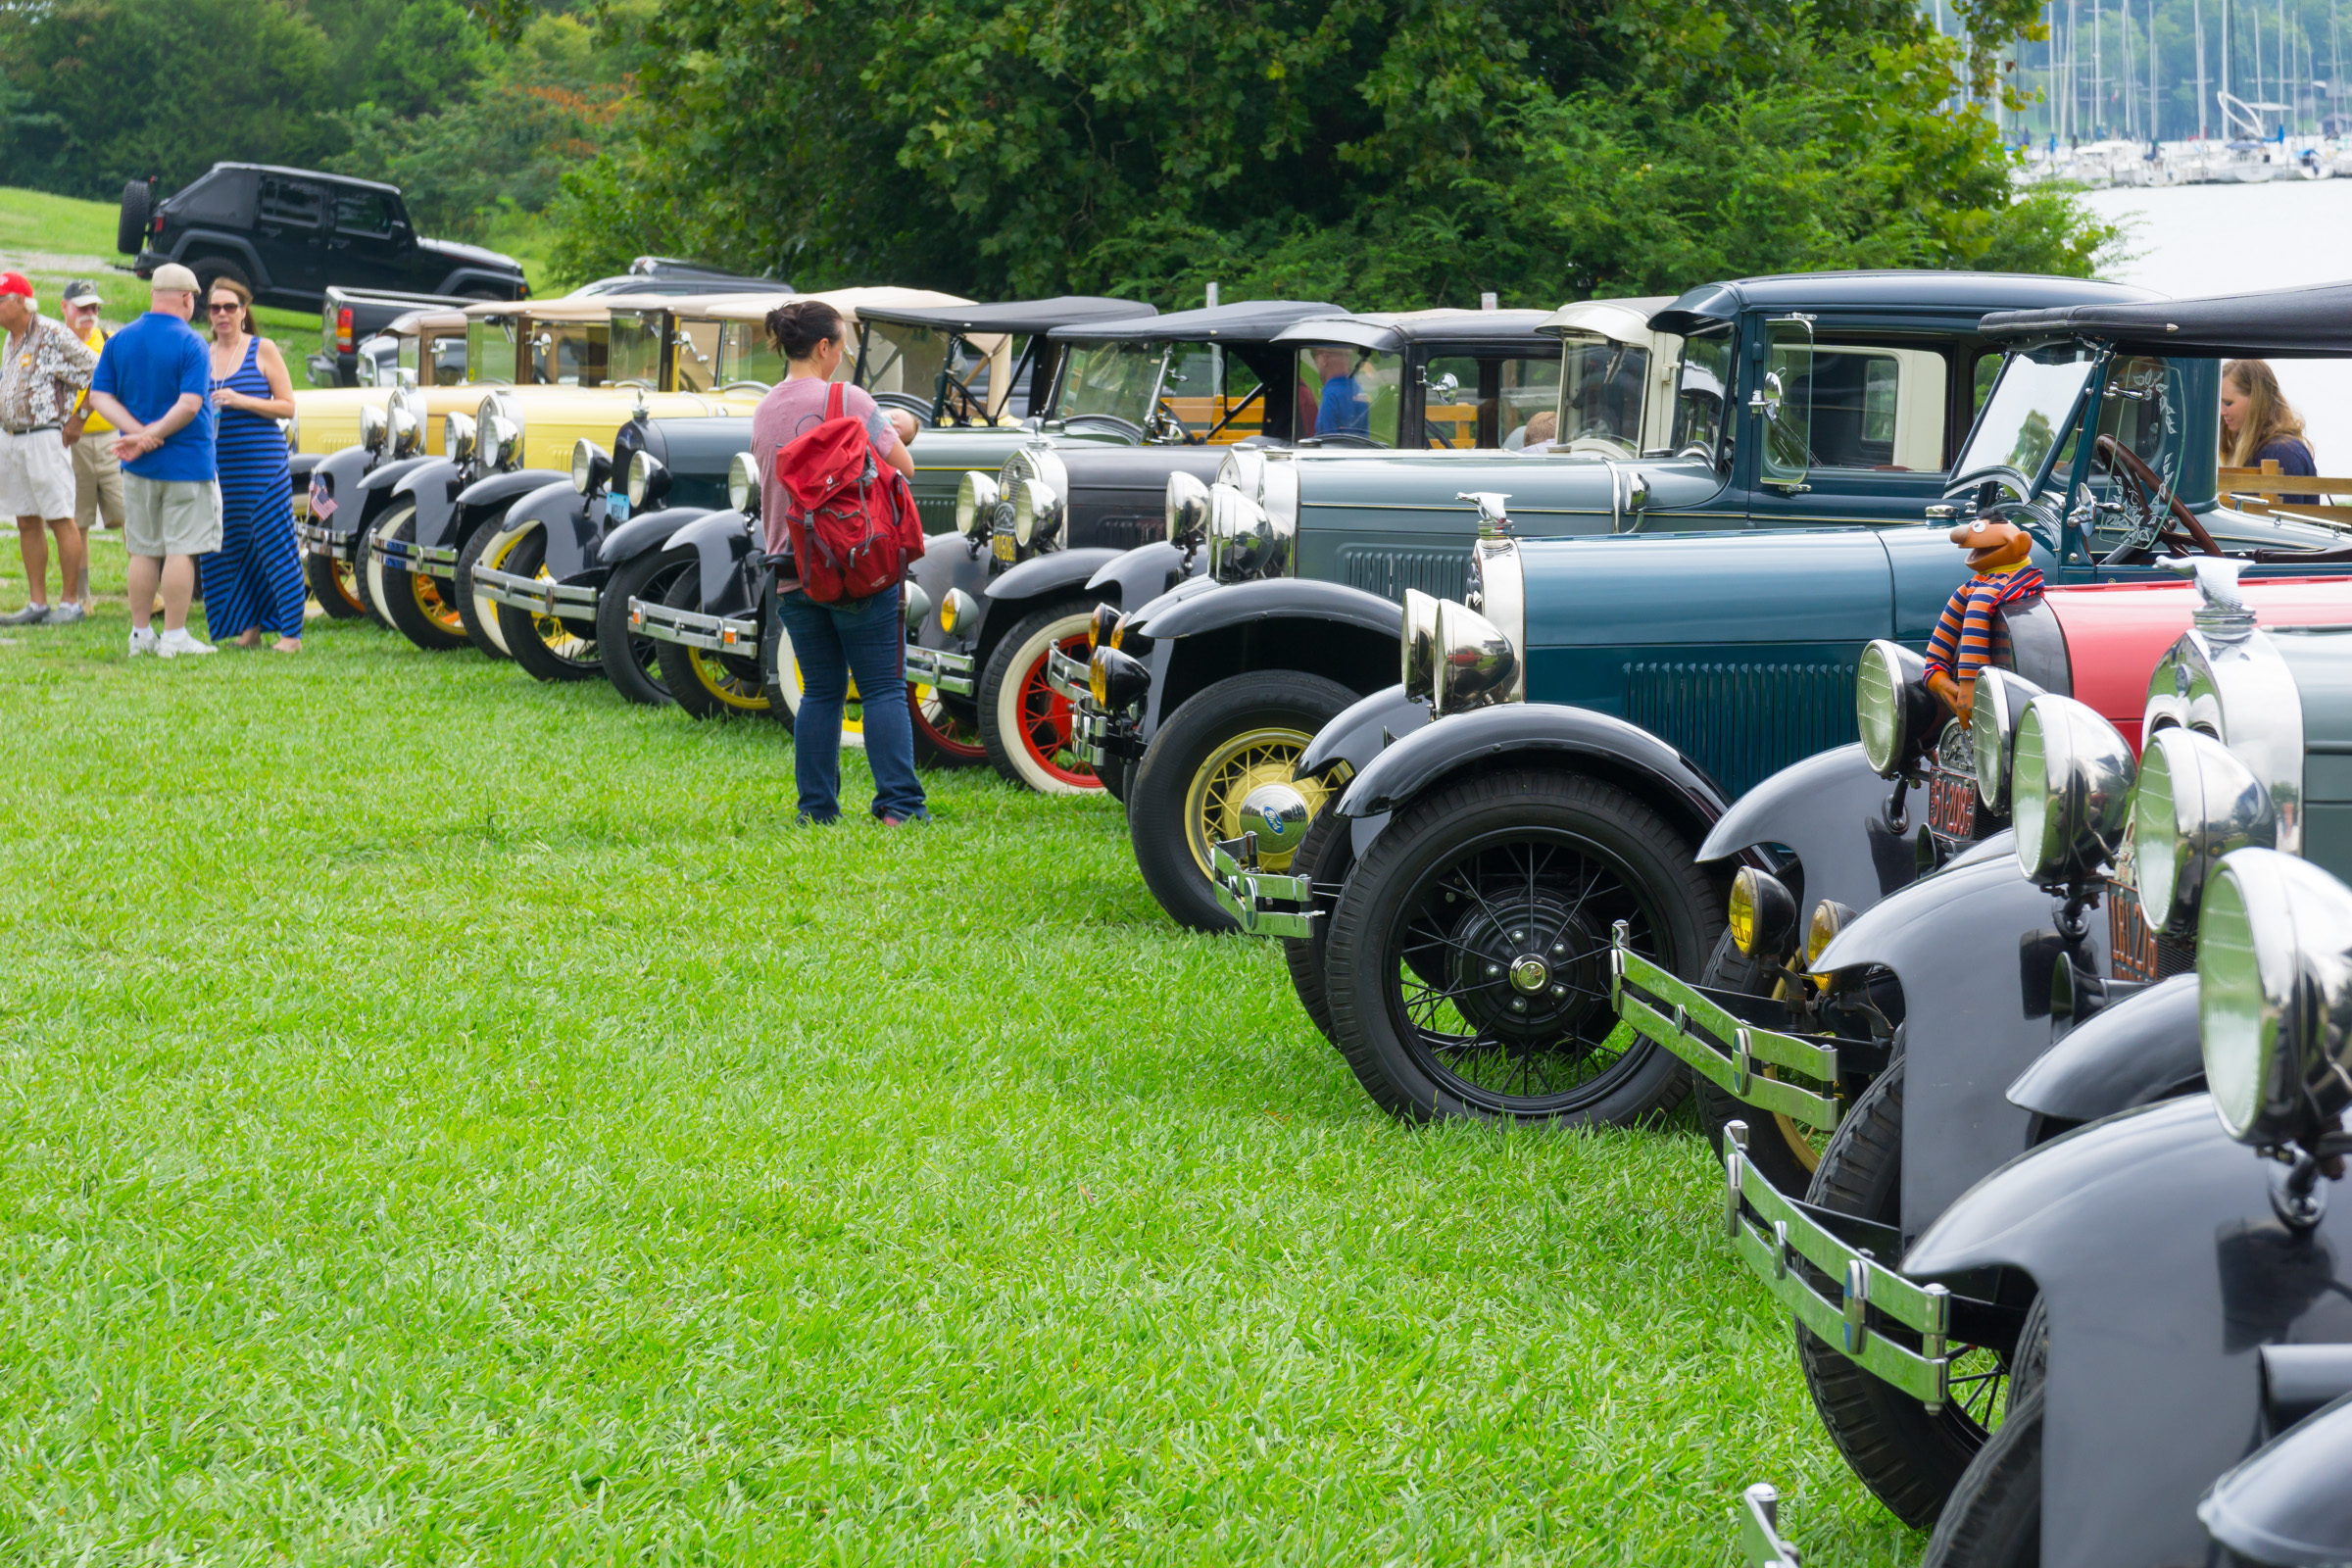 2016 Smoky Mountain Model A Club picnic